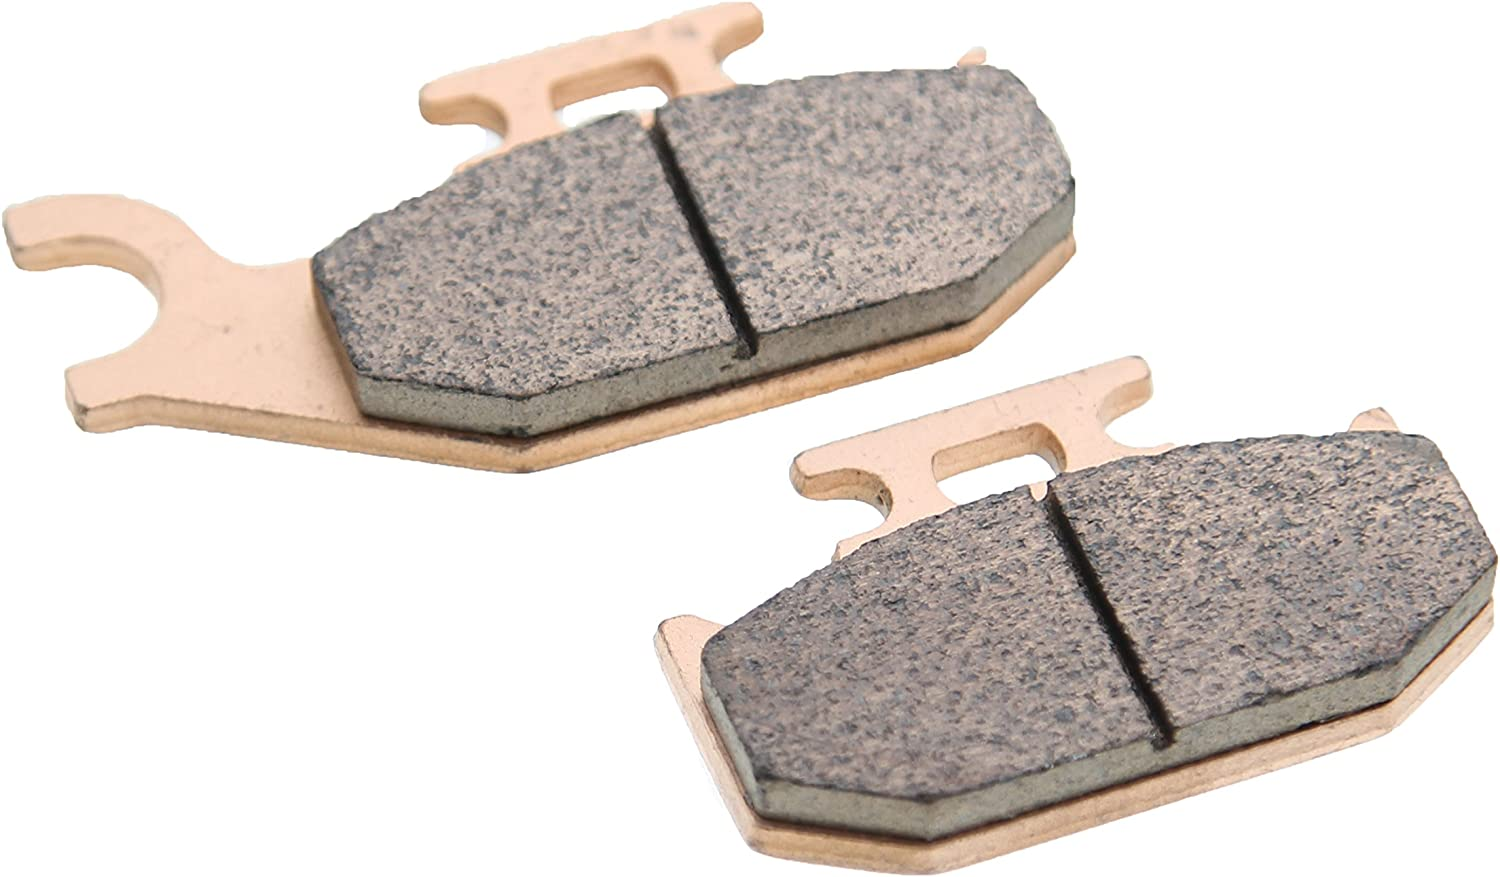 Brake Pads for Hisun 550 Sector 2015 2016 Parking Brakes by Race-Driven